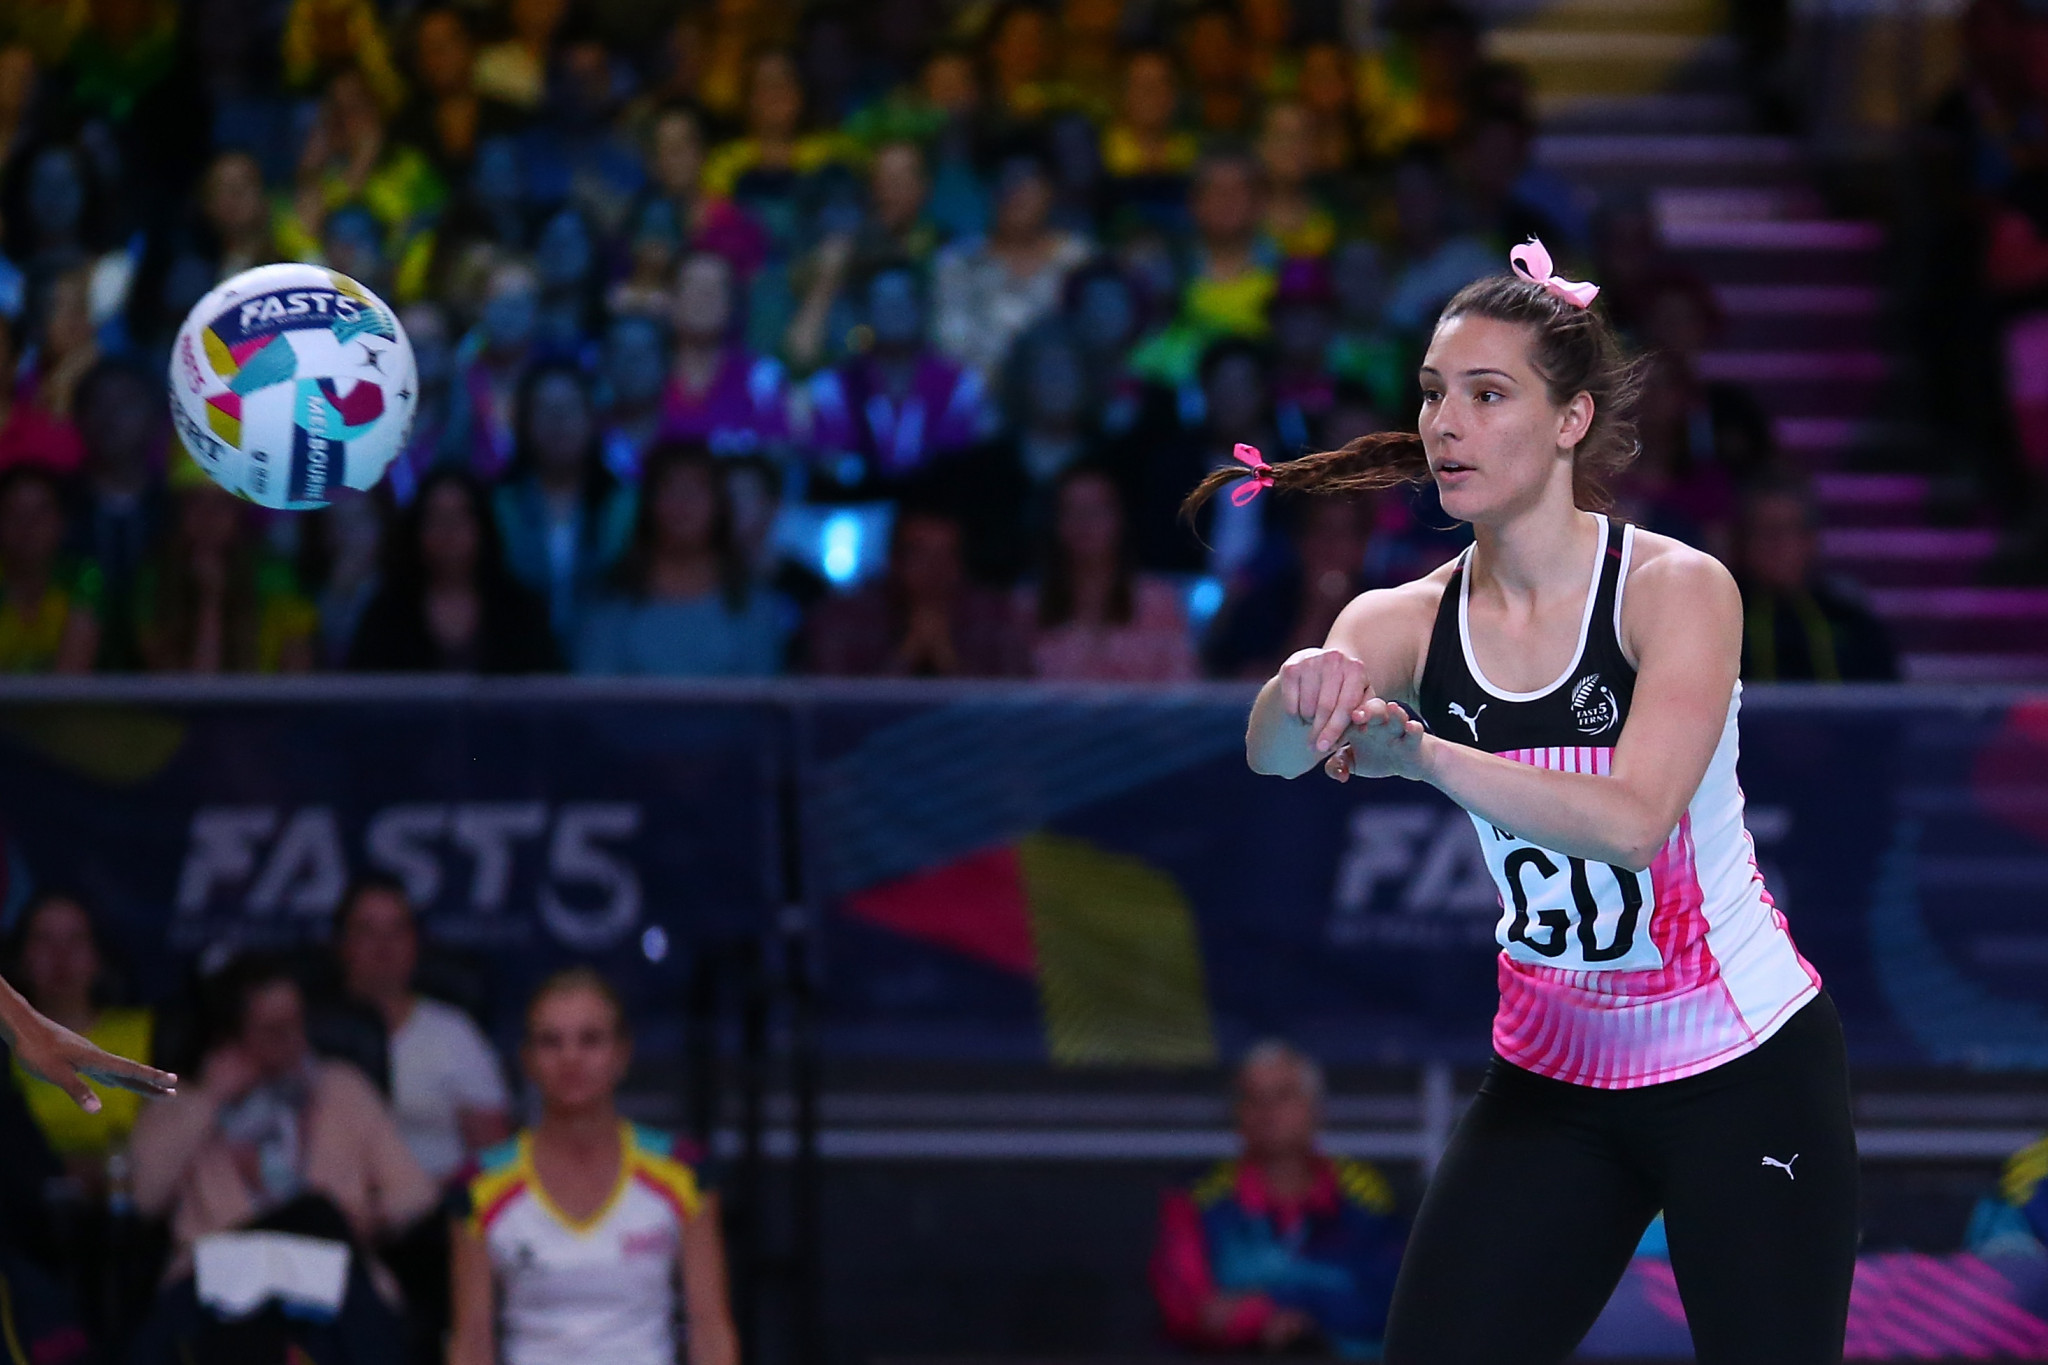 Fast5 netball confirmed as one of eight sports at Trinidad and Tobago 2021 Commonwealth Youth Games